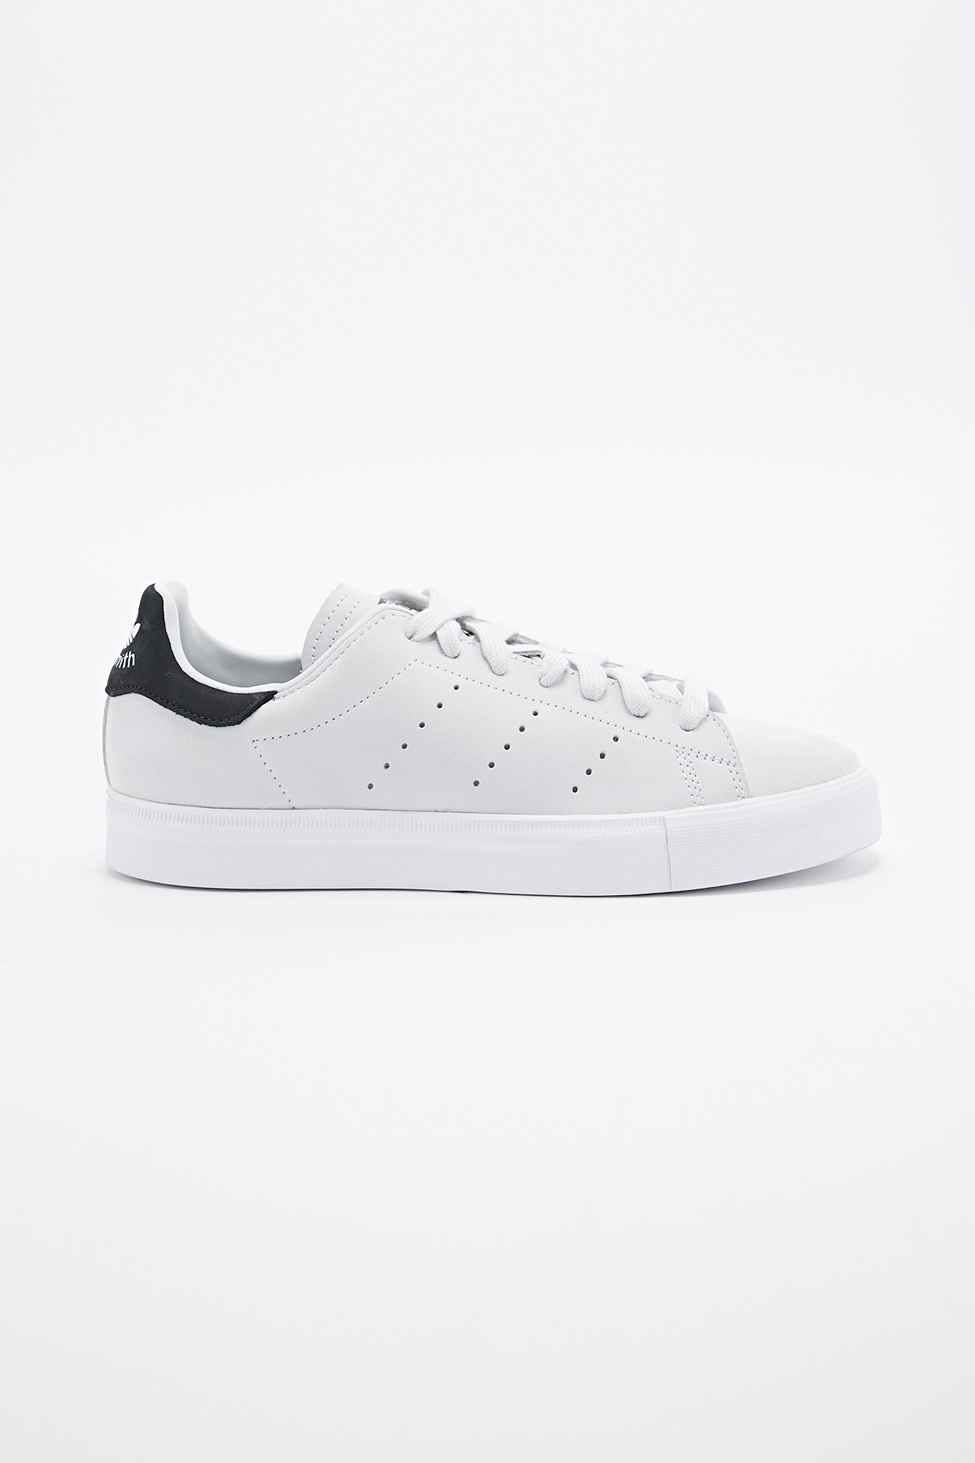 bbc603db77c8 adidas - Baskets Stan Smith blanches et noires